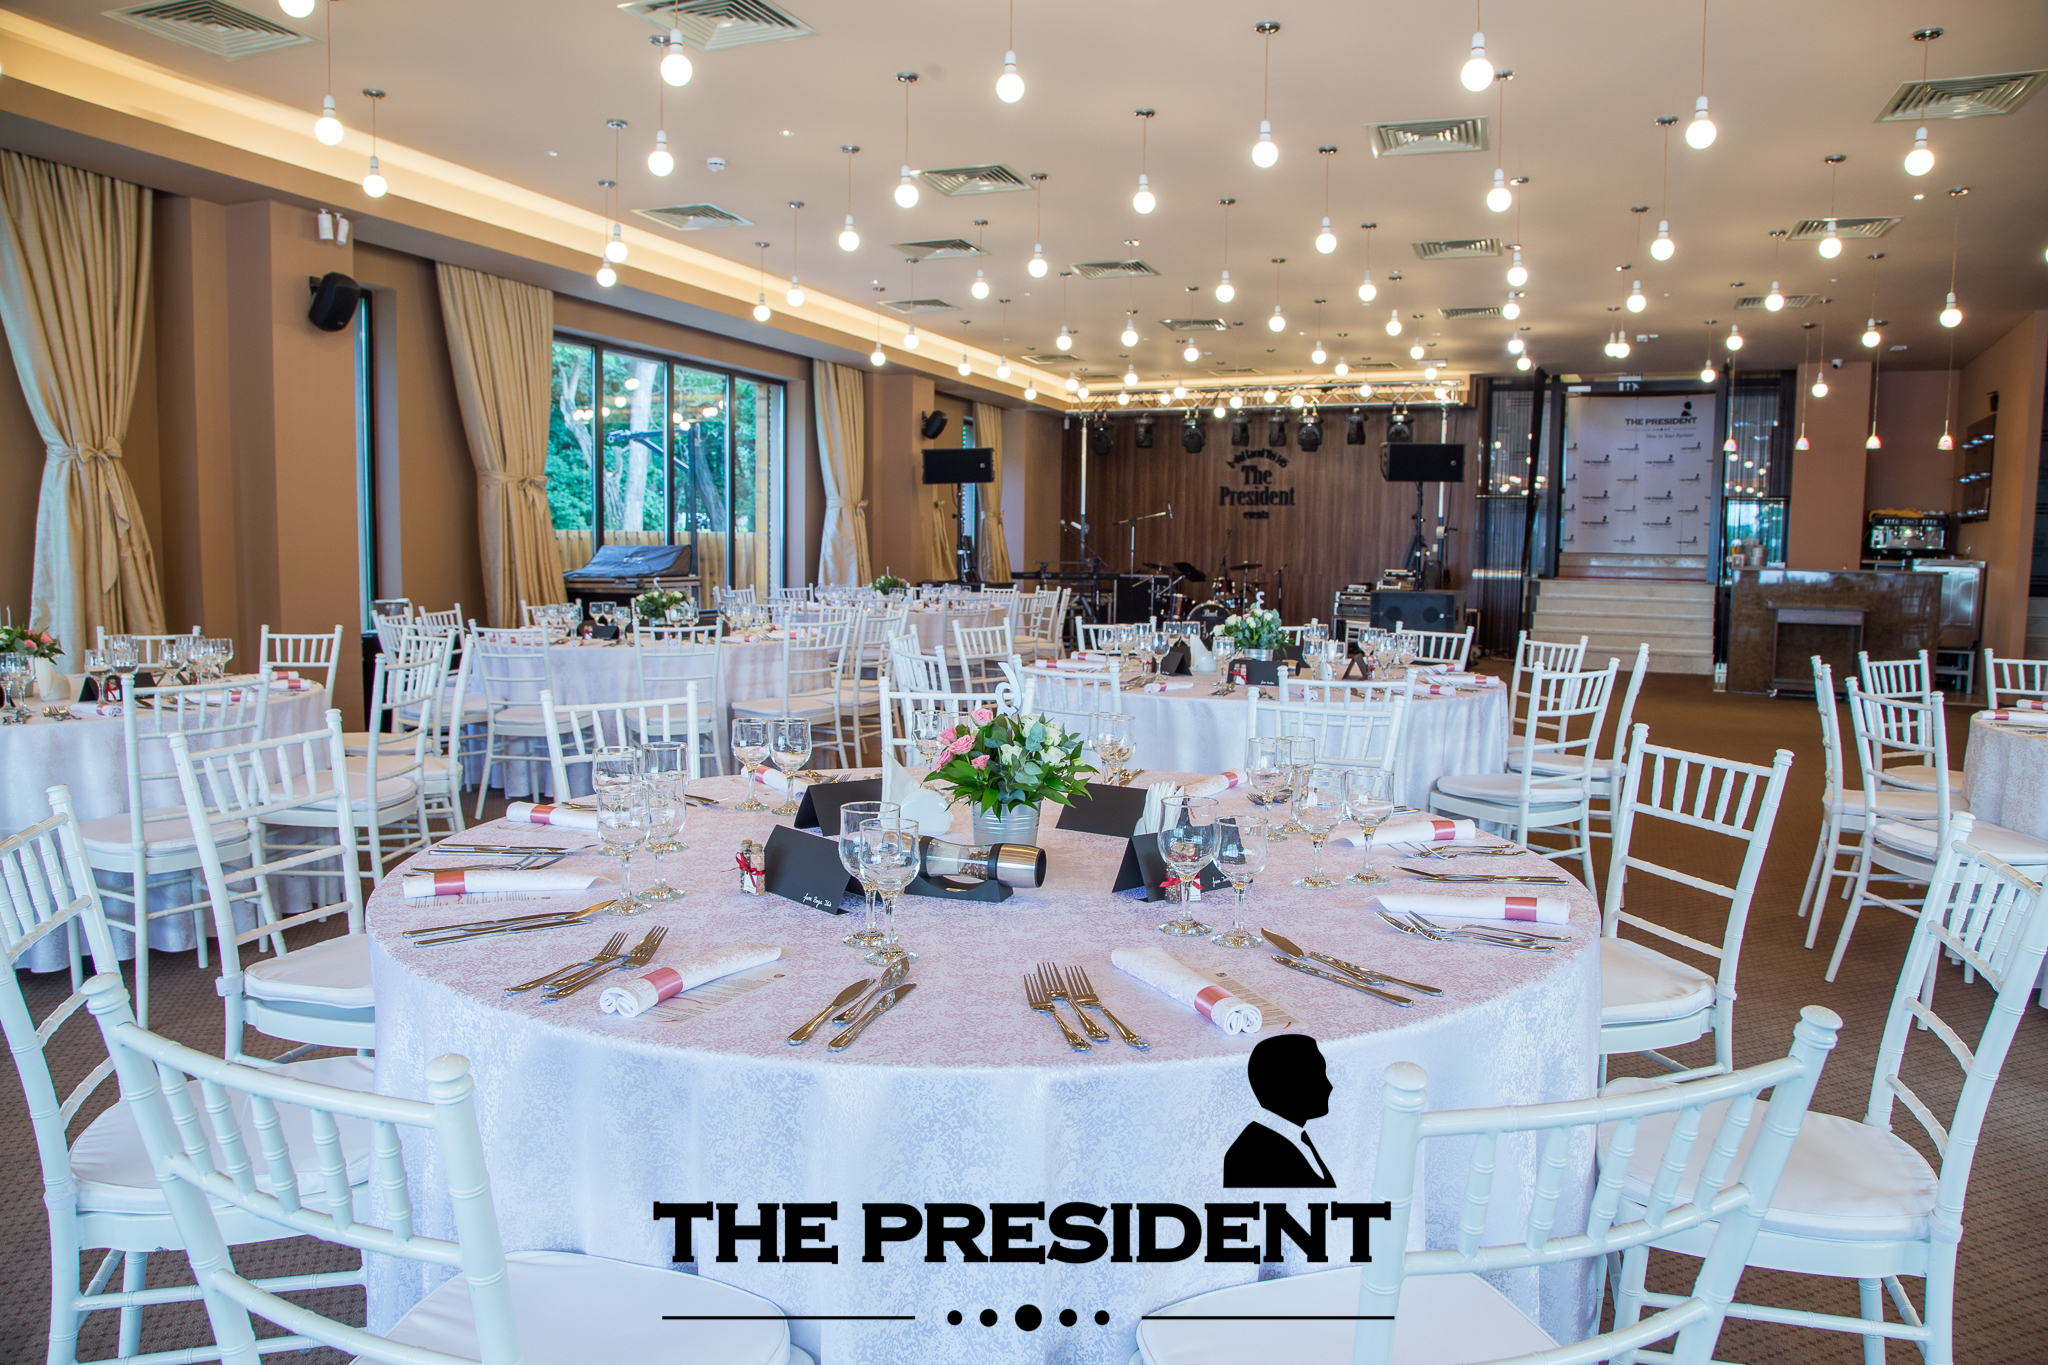 Petreceri corporate la The President – Craciun 2019